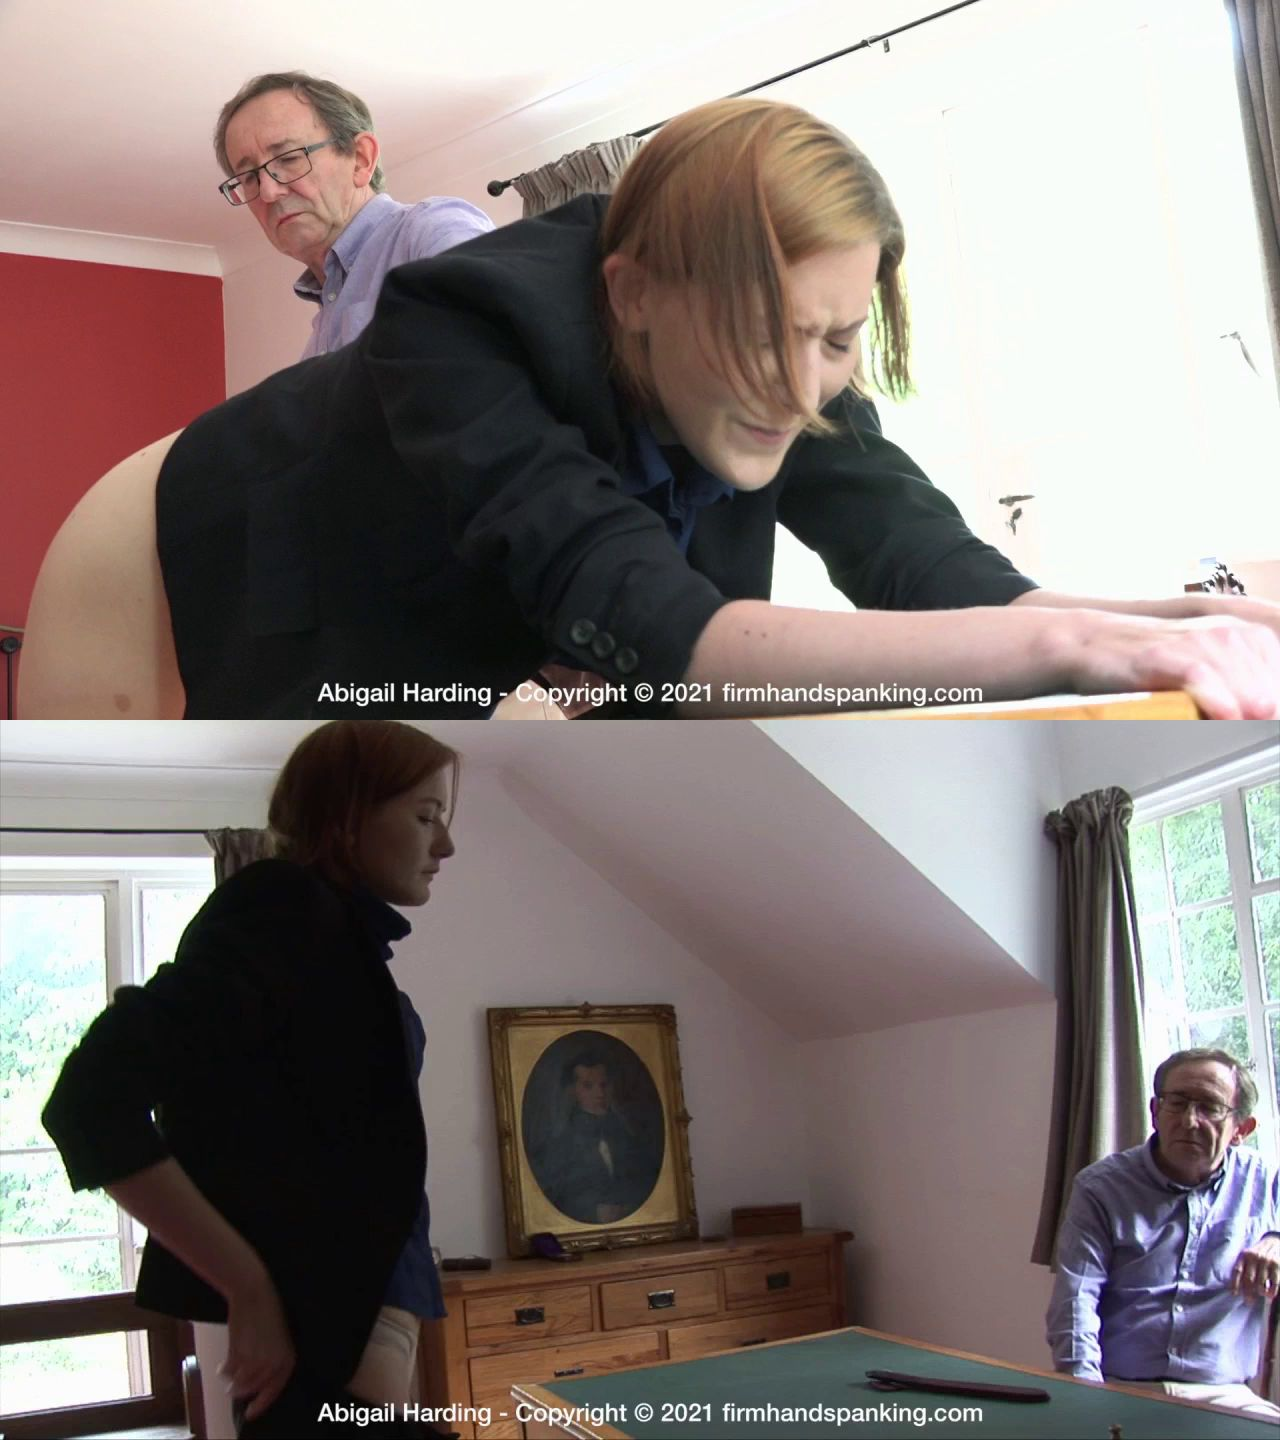 firmhandspanking – MP4/HD – Abigail Harding – The Estate (Release date: May 12, 2021)